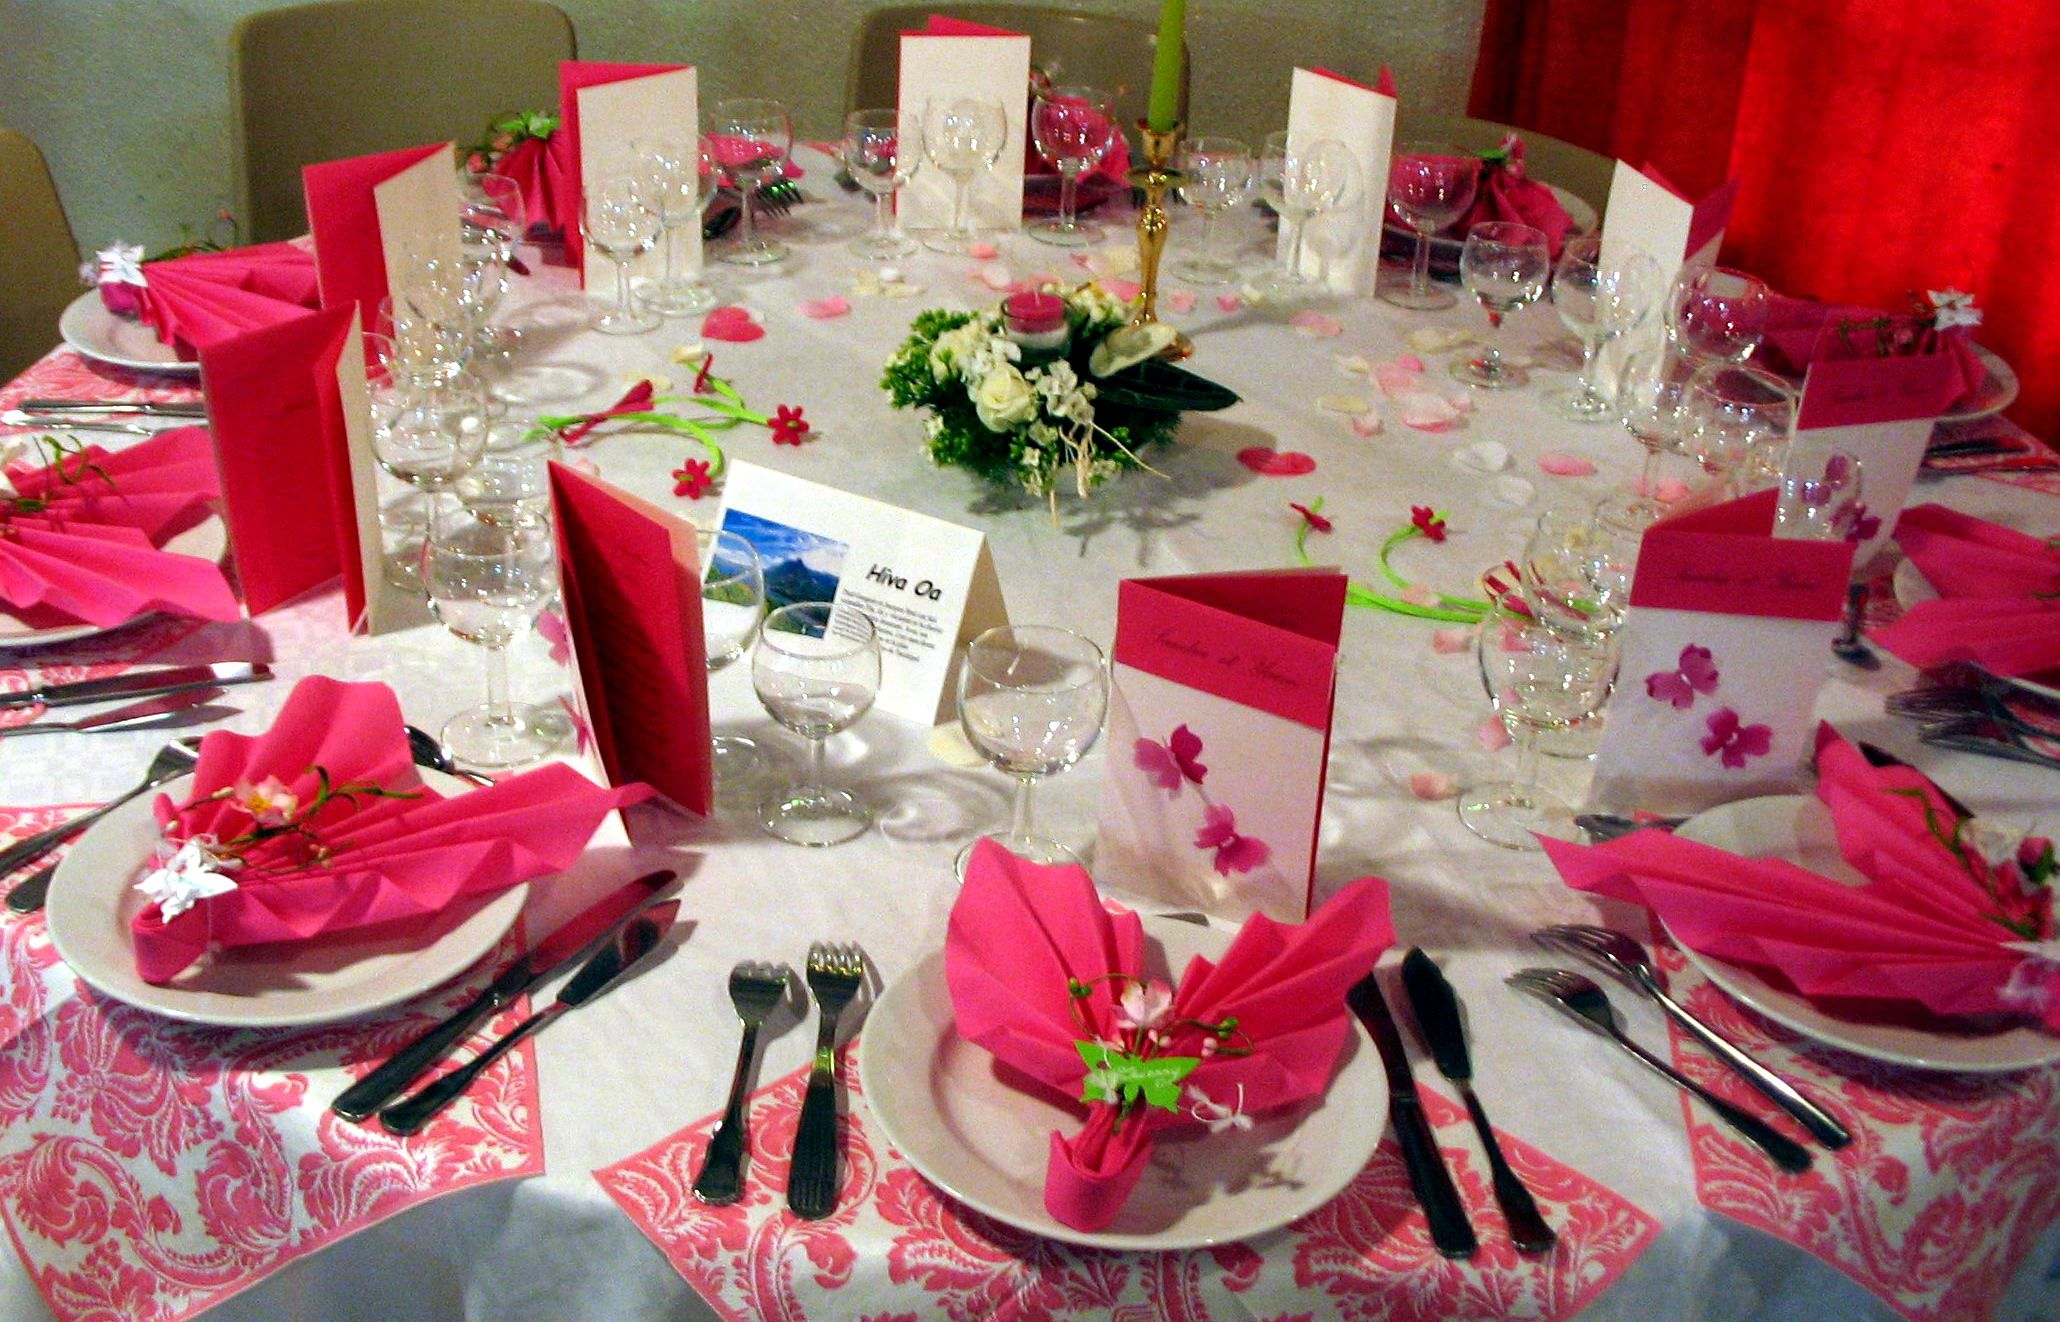 D coration table de mariage photo d co de table mariage for Decoration mariage table